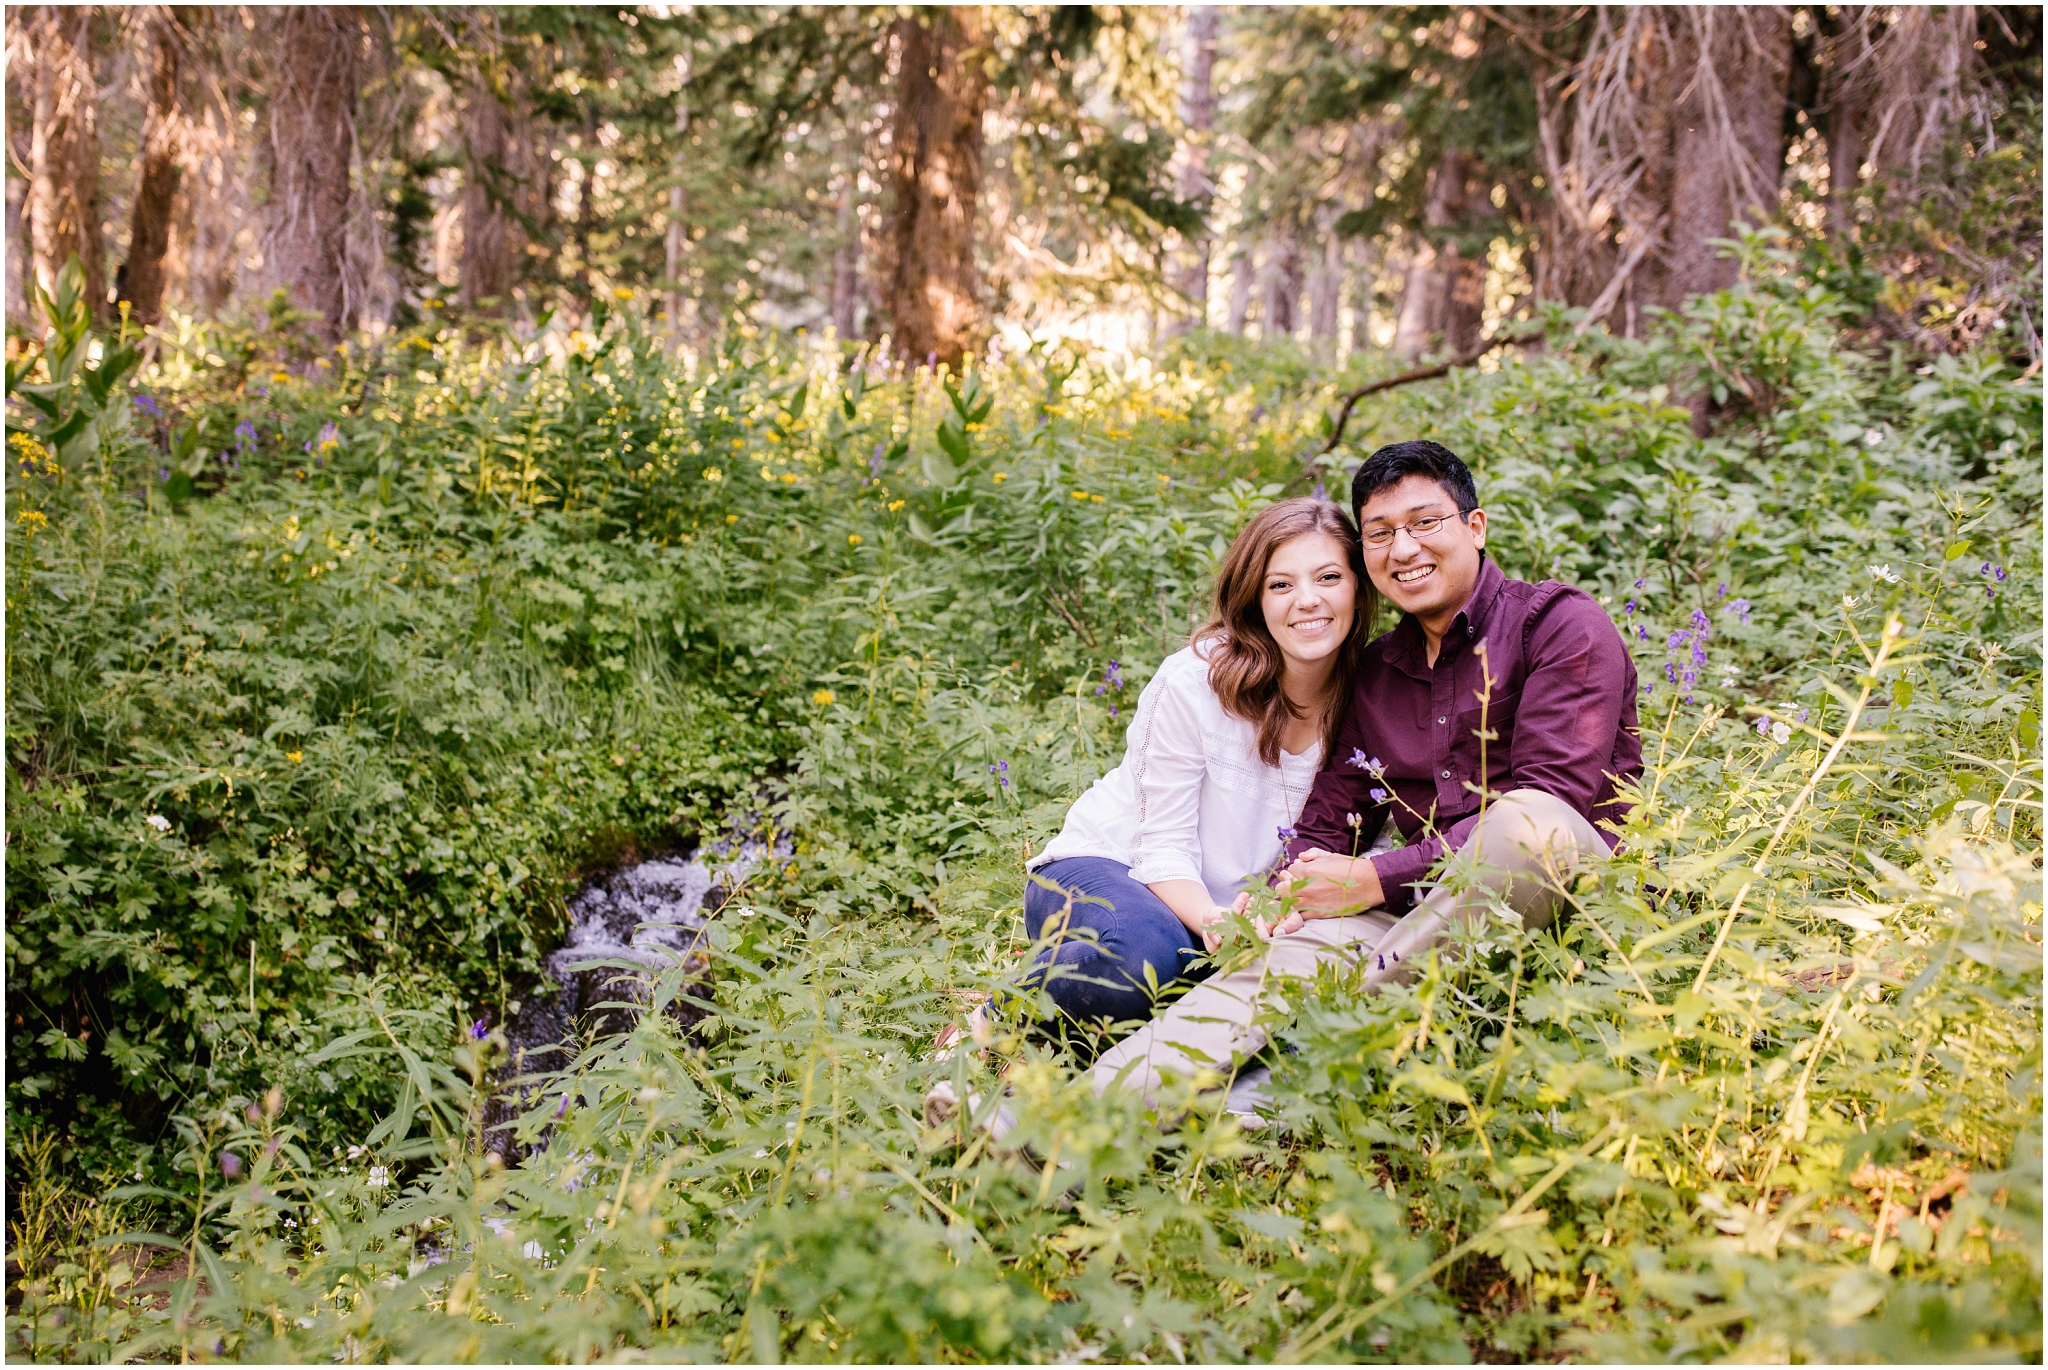 Harold and Emma-28_Lizzie-B-Imagery-Utah-Wedding-Photographer-Central-Utah-Park-City-Salt-Lake-City-Albion-Basin-Engagement-Session.jpg